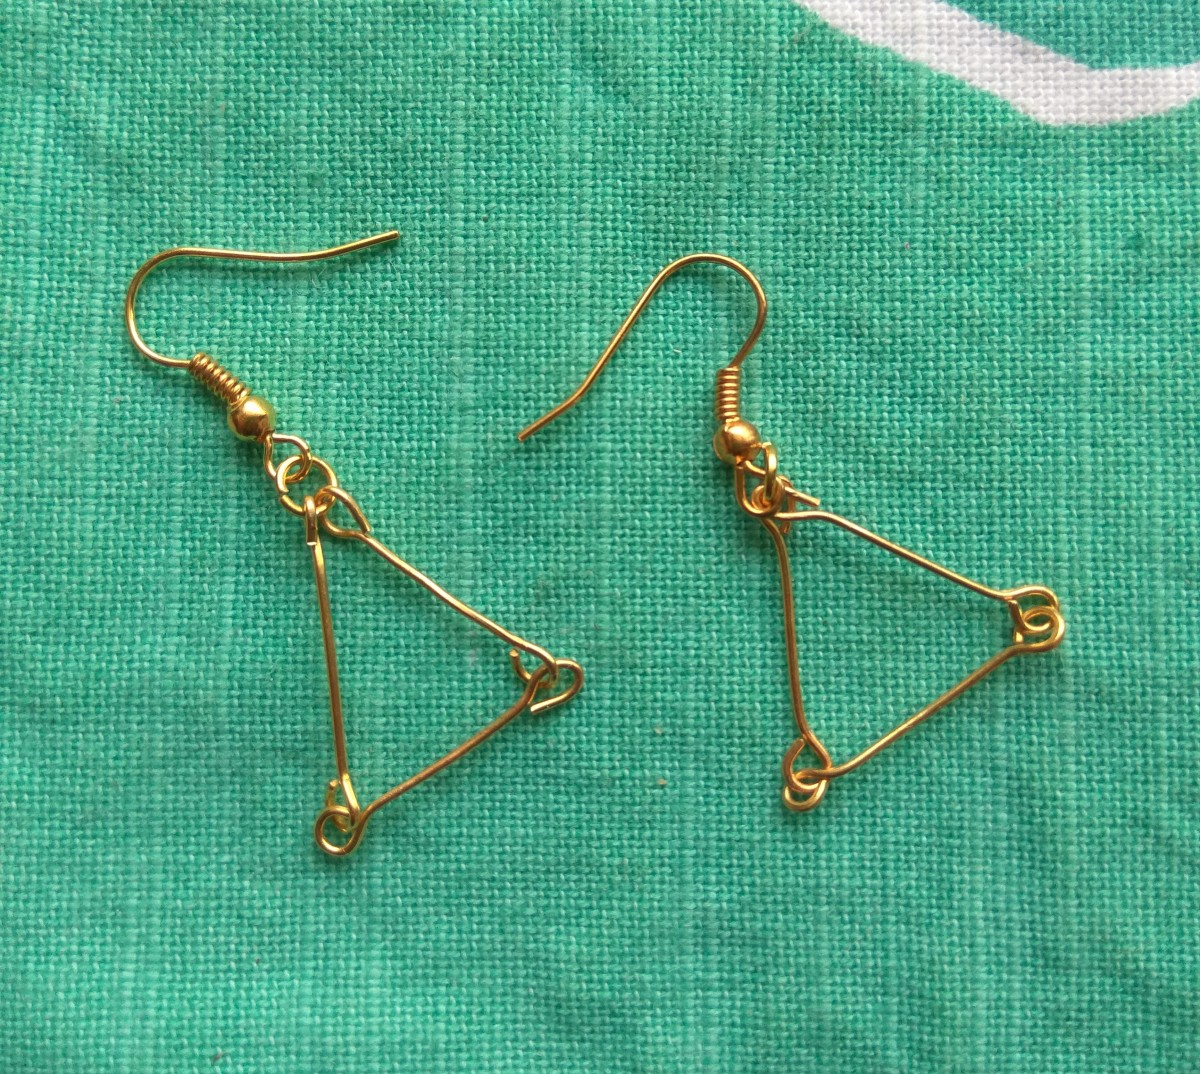 DIY Project: How to Make Triangle Earrings With Just Jewelry Findings